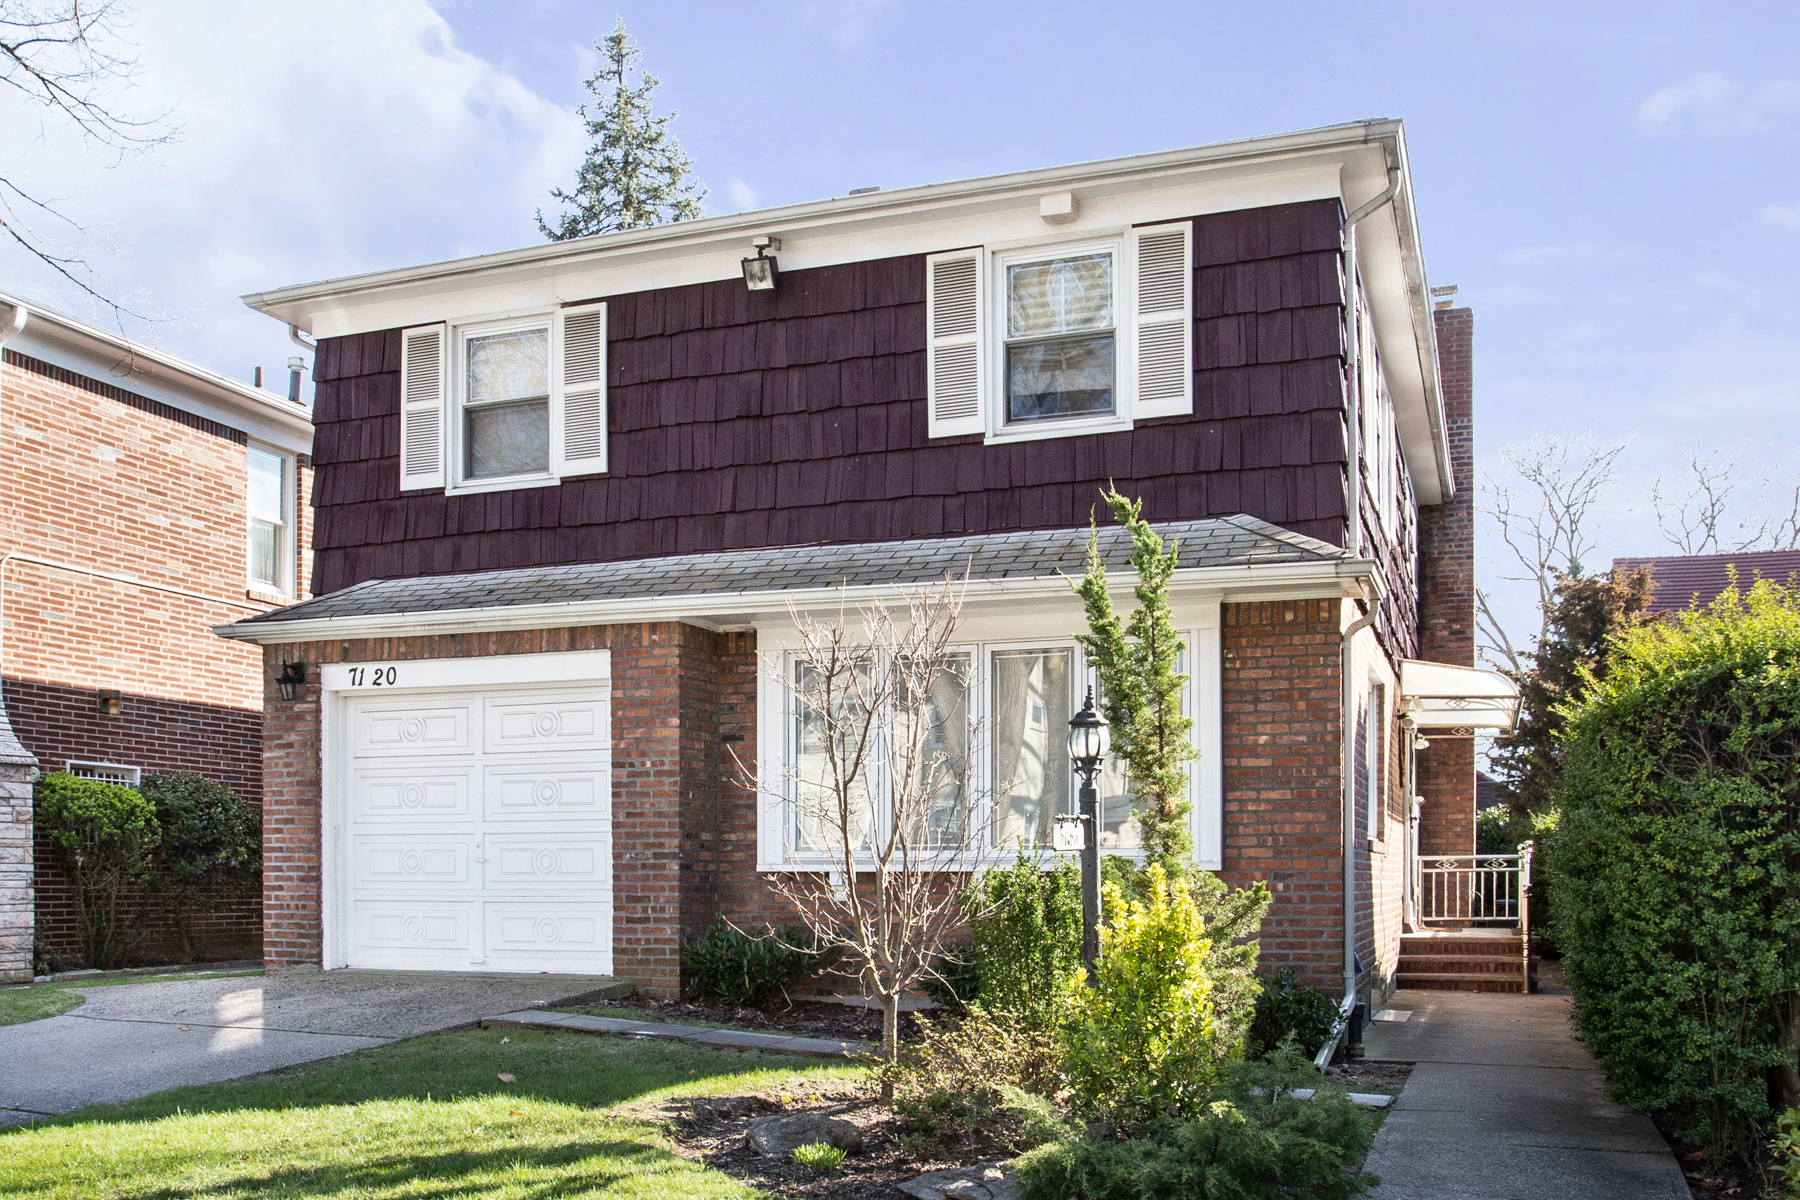 """Single Family Homes for Active at """"DETACHED VAN COURT CONTEMPORARY"""" 71-20 Harrow Street, Forest Hills Van Court, Forest Hills, New York 11375 United States"""